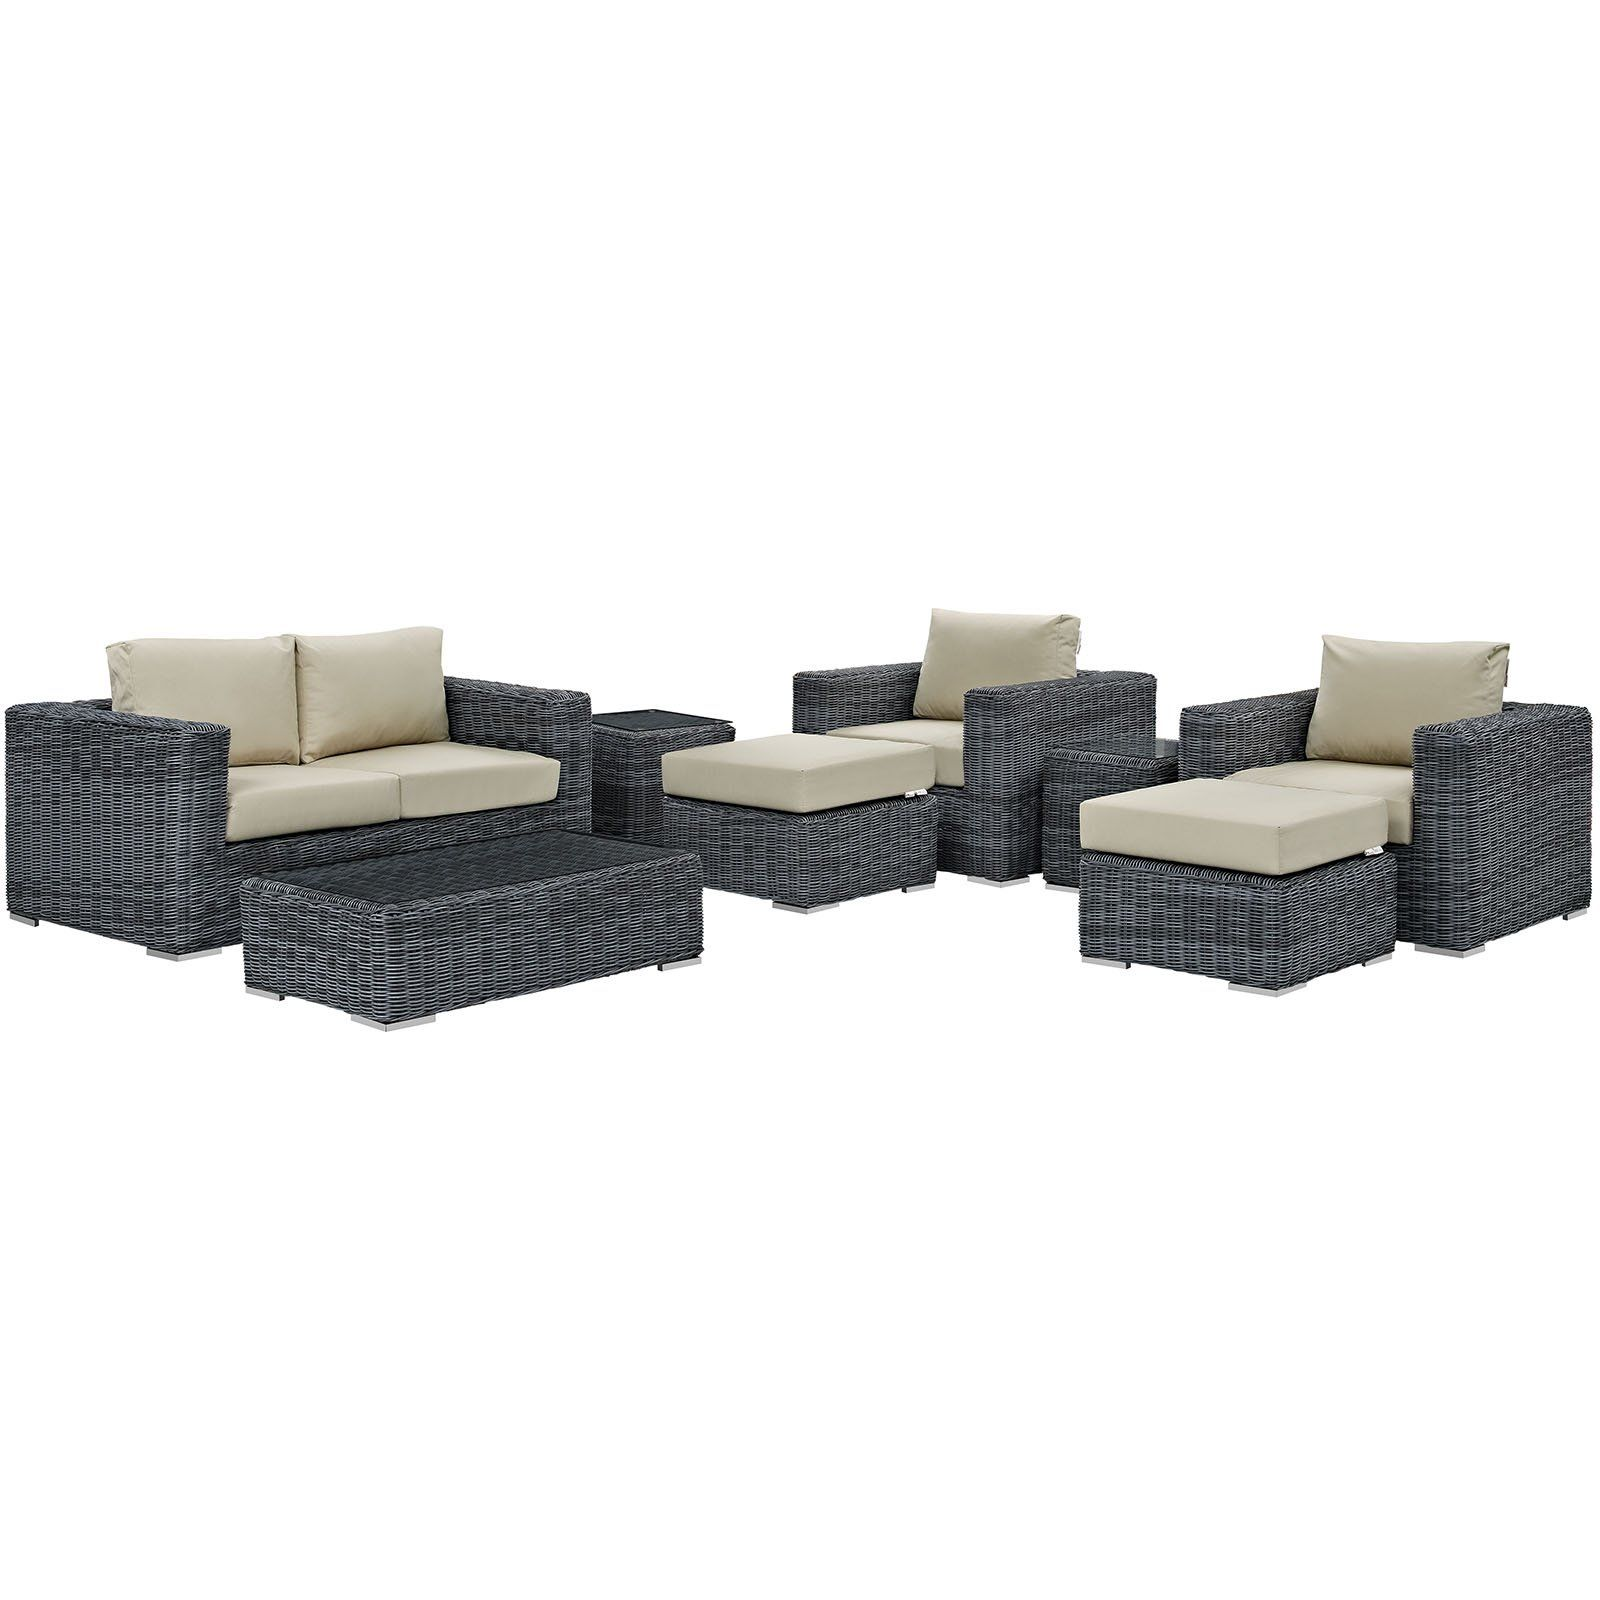 Summon piece outdoor patio sunbrella sectional set eei